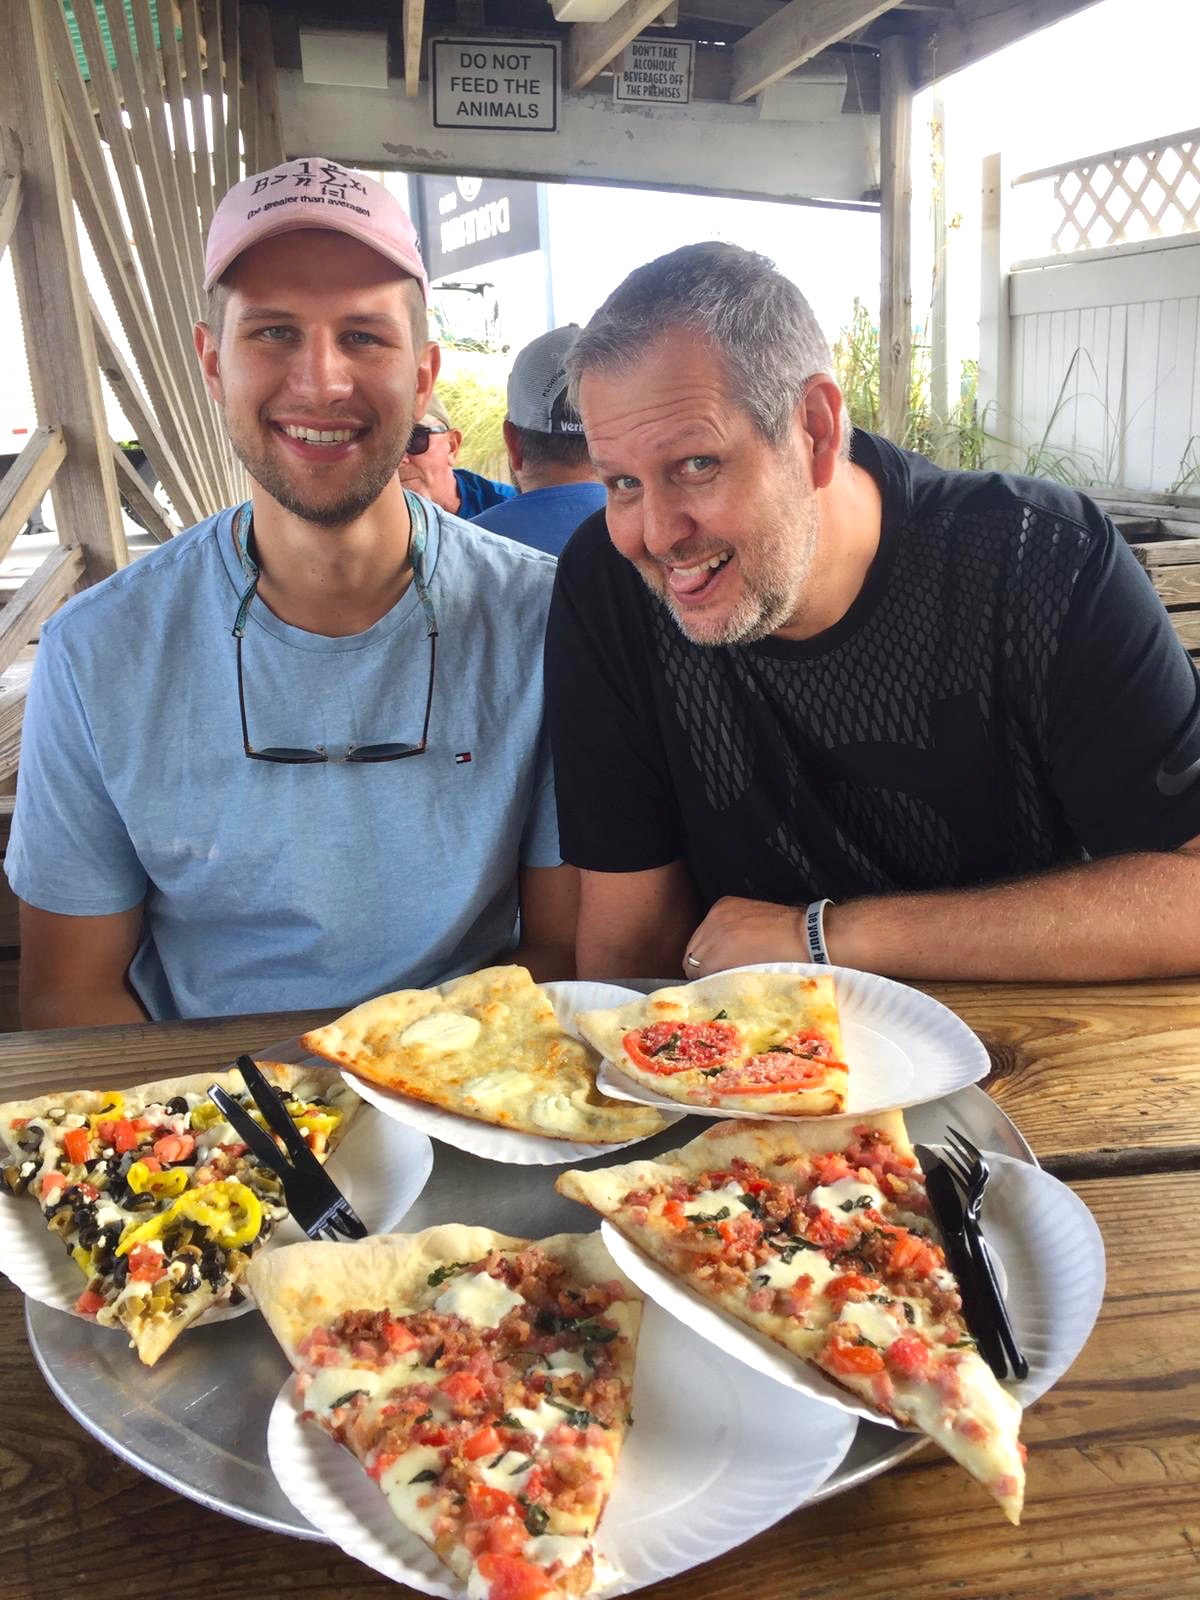 andrzej and his father, Mariusz Kolaczewski, enjoying lunch at  The Original Bizzarro Famous NY Pizza  in indialantic, florida.